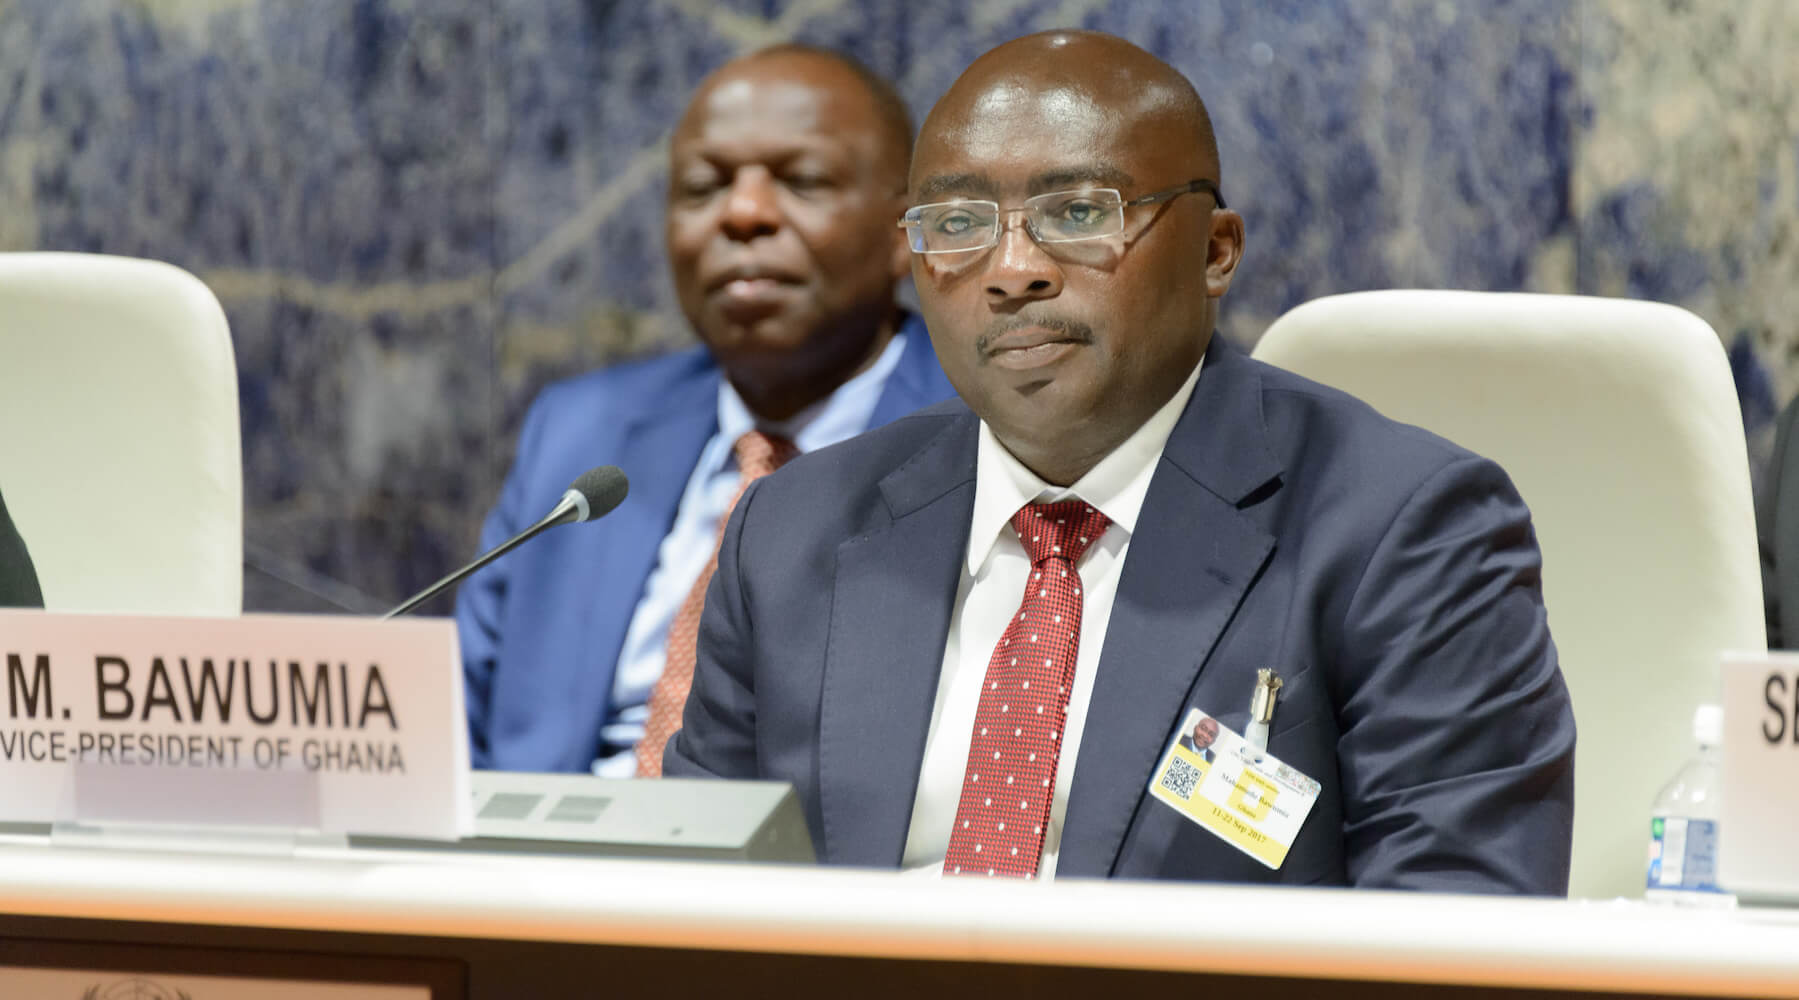 The vice president of Ghana, Mahamudu Bawumia, speaks on a panel